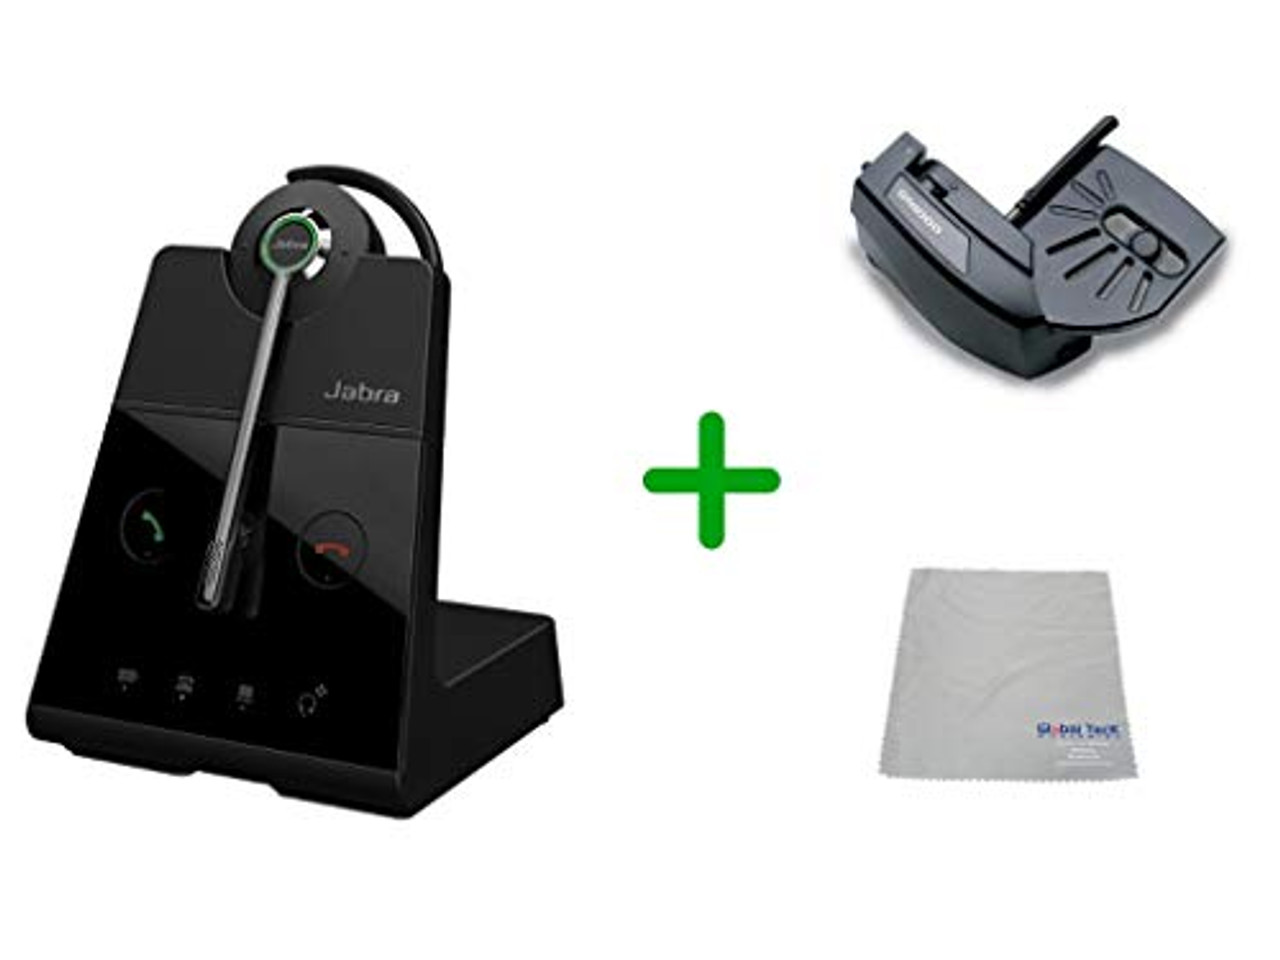 Cisco Compatible Jabra Engage 65 Wireless Mono Headset Bundle With Lifter 9553 553 125 Cis B Cfor Cisco Deskphones And Pc Mac Cisco Models 6901 6911 6921 6941 6961 7902 7905 7911 7912 7931 7940g 7941 7960 7961 7970 Global Teck